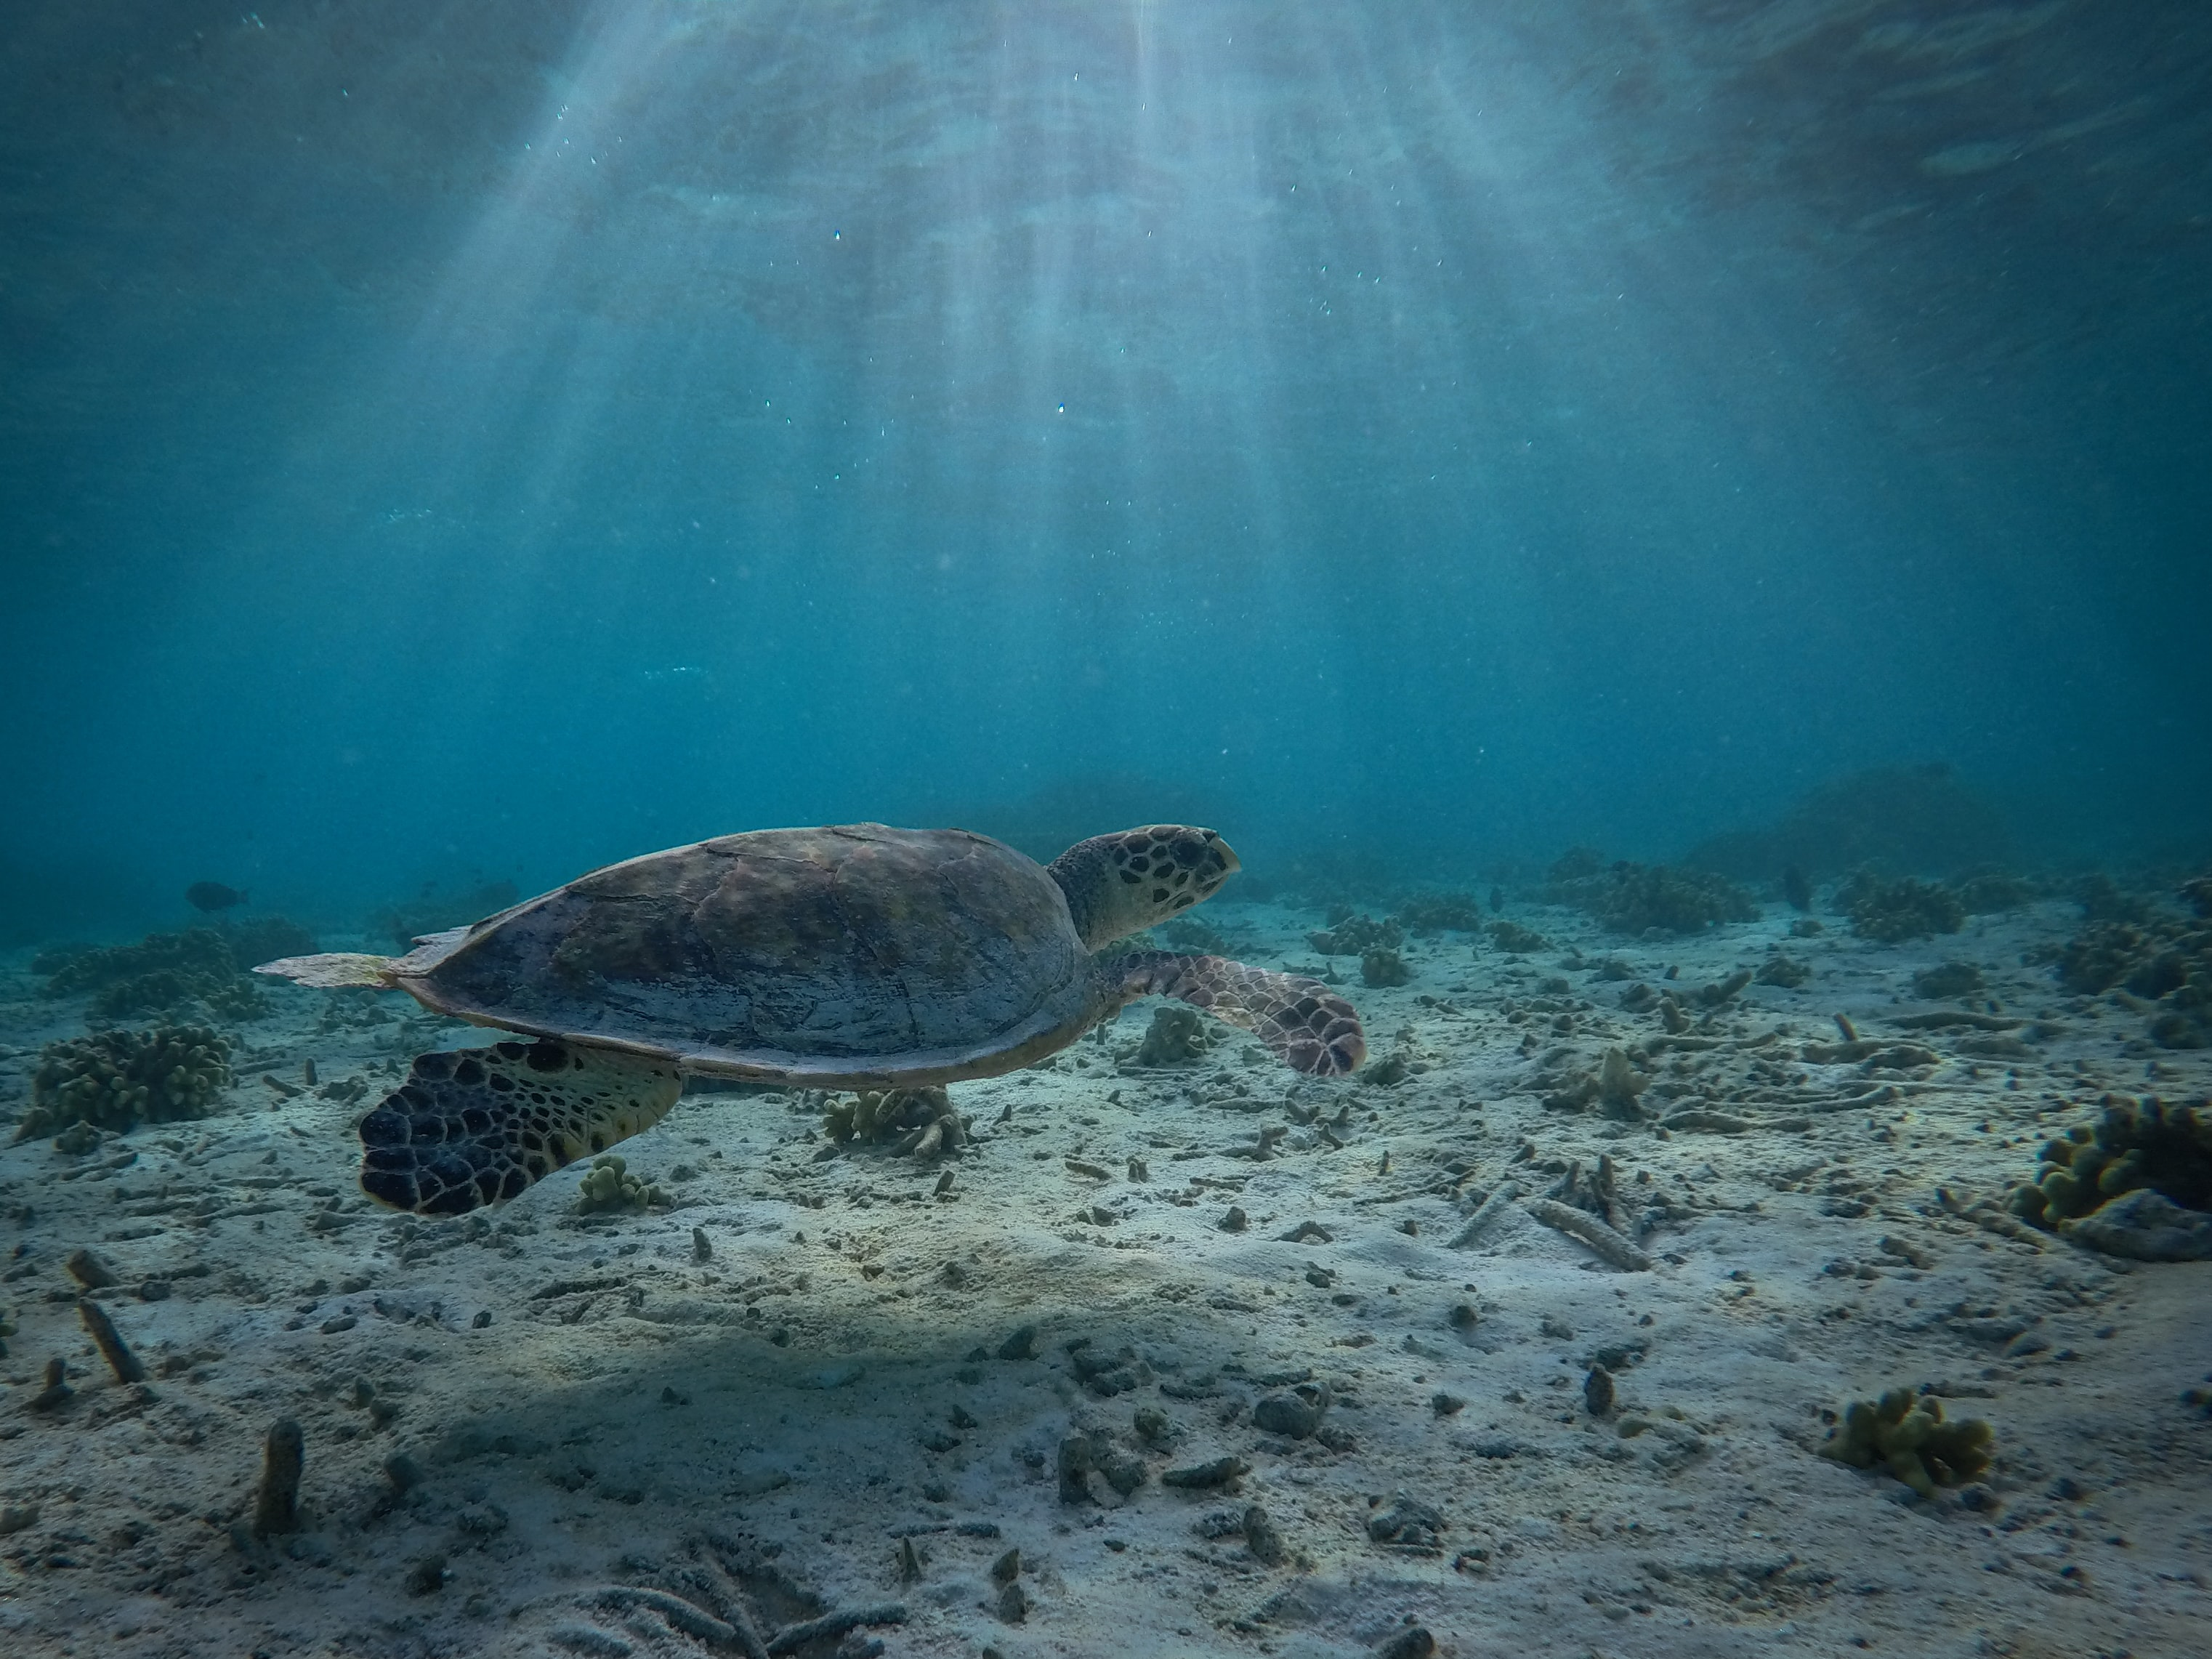 underwater photography of gray turtle